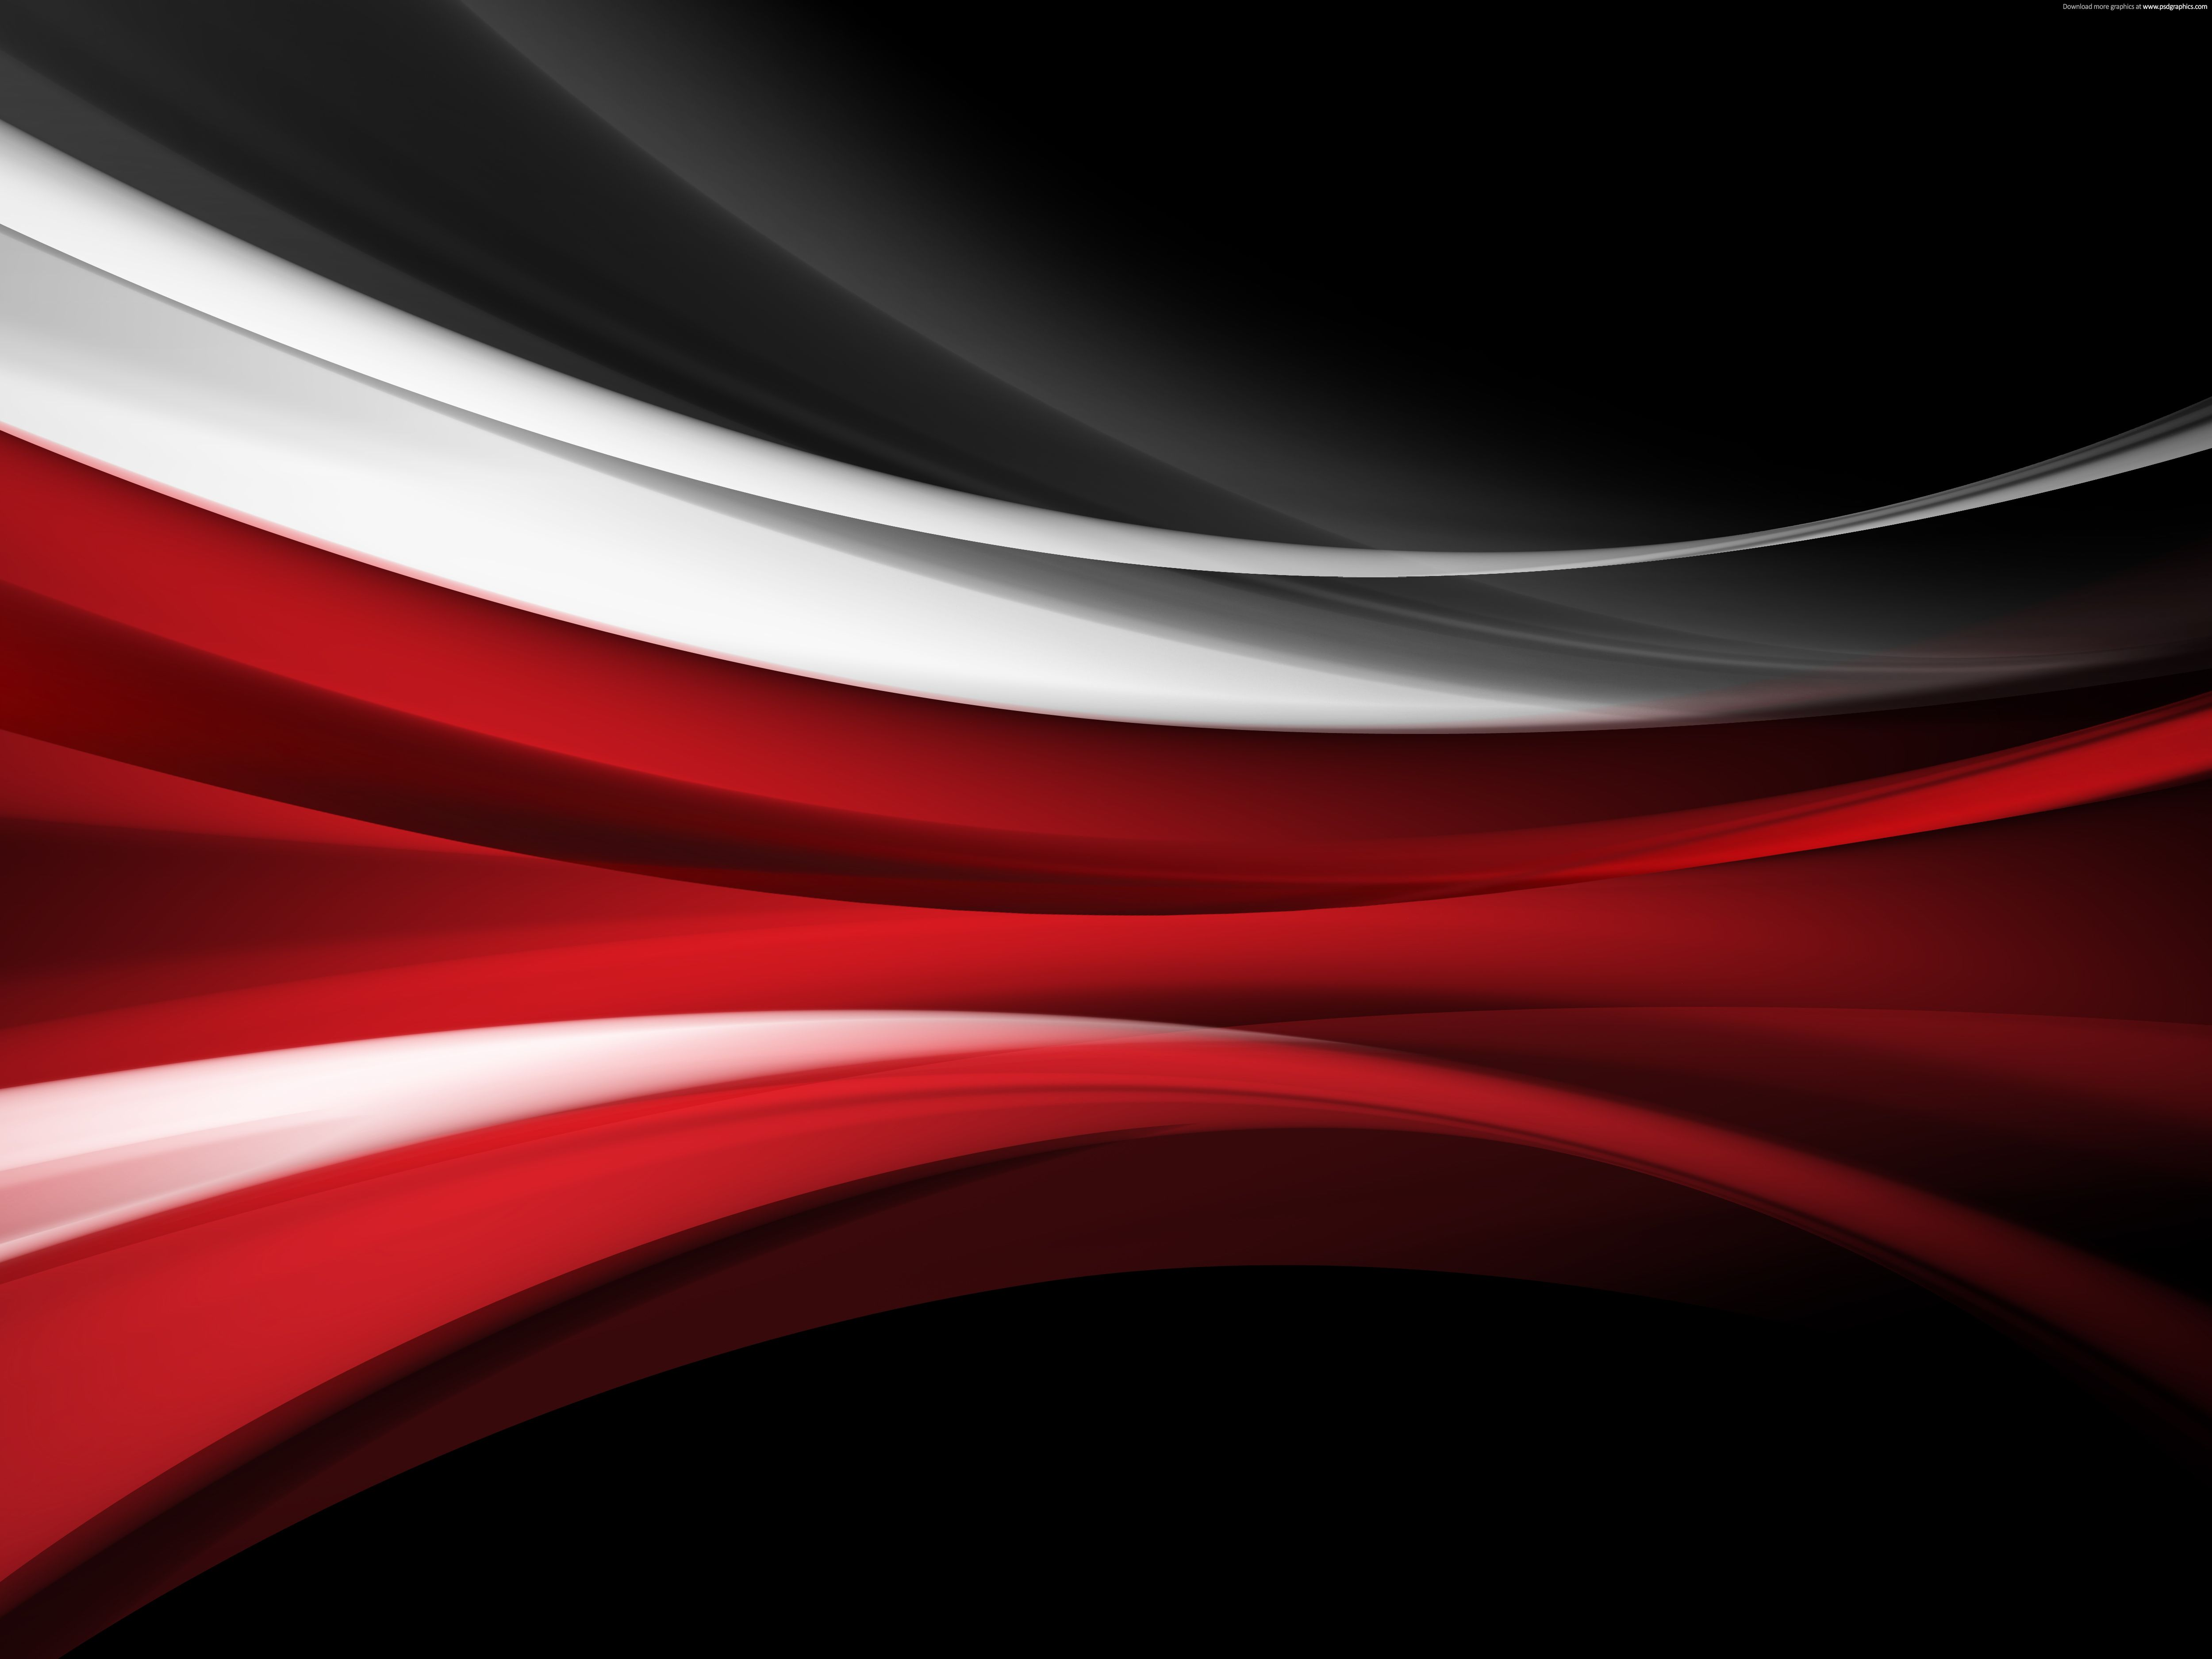 White Light Abstract Motion Blur Background Beautiful Abstract